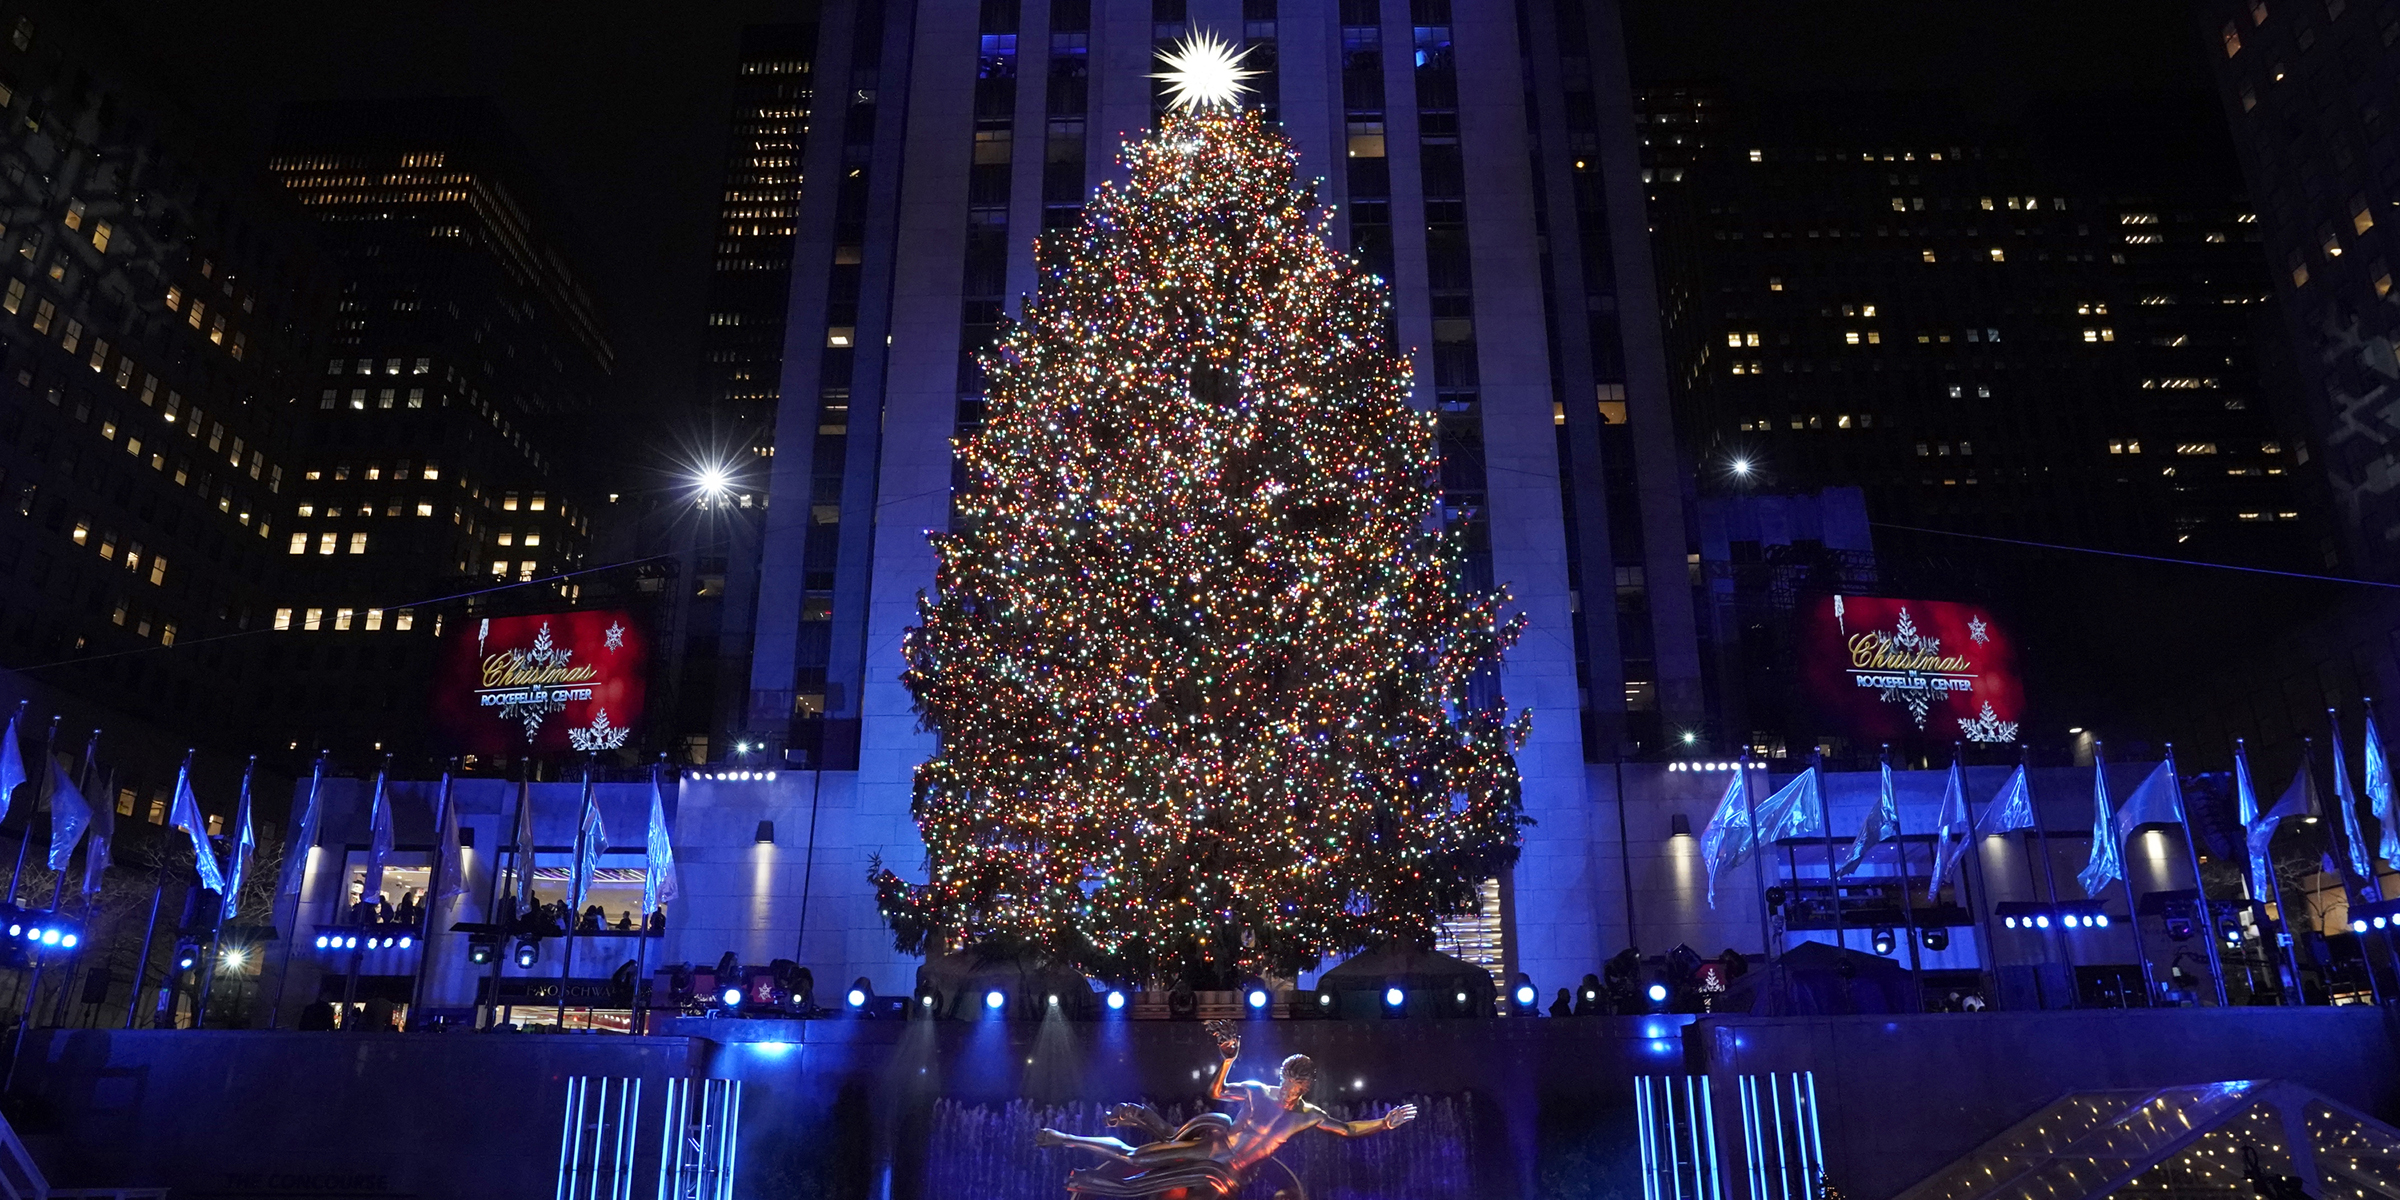 Rockefeller Plaza Christmas Tree 2020 The 2019 Rockefeller Center Christmas tree has been chosen! Here's